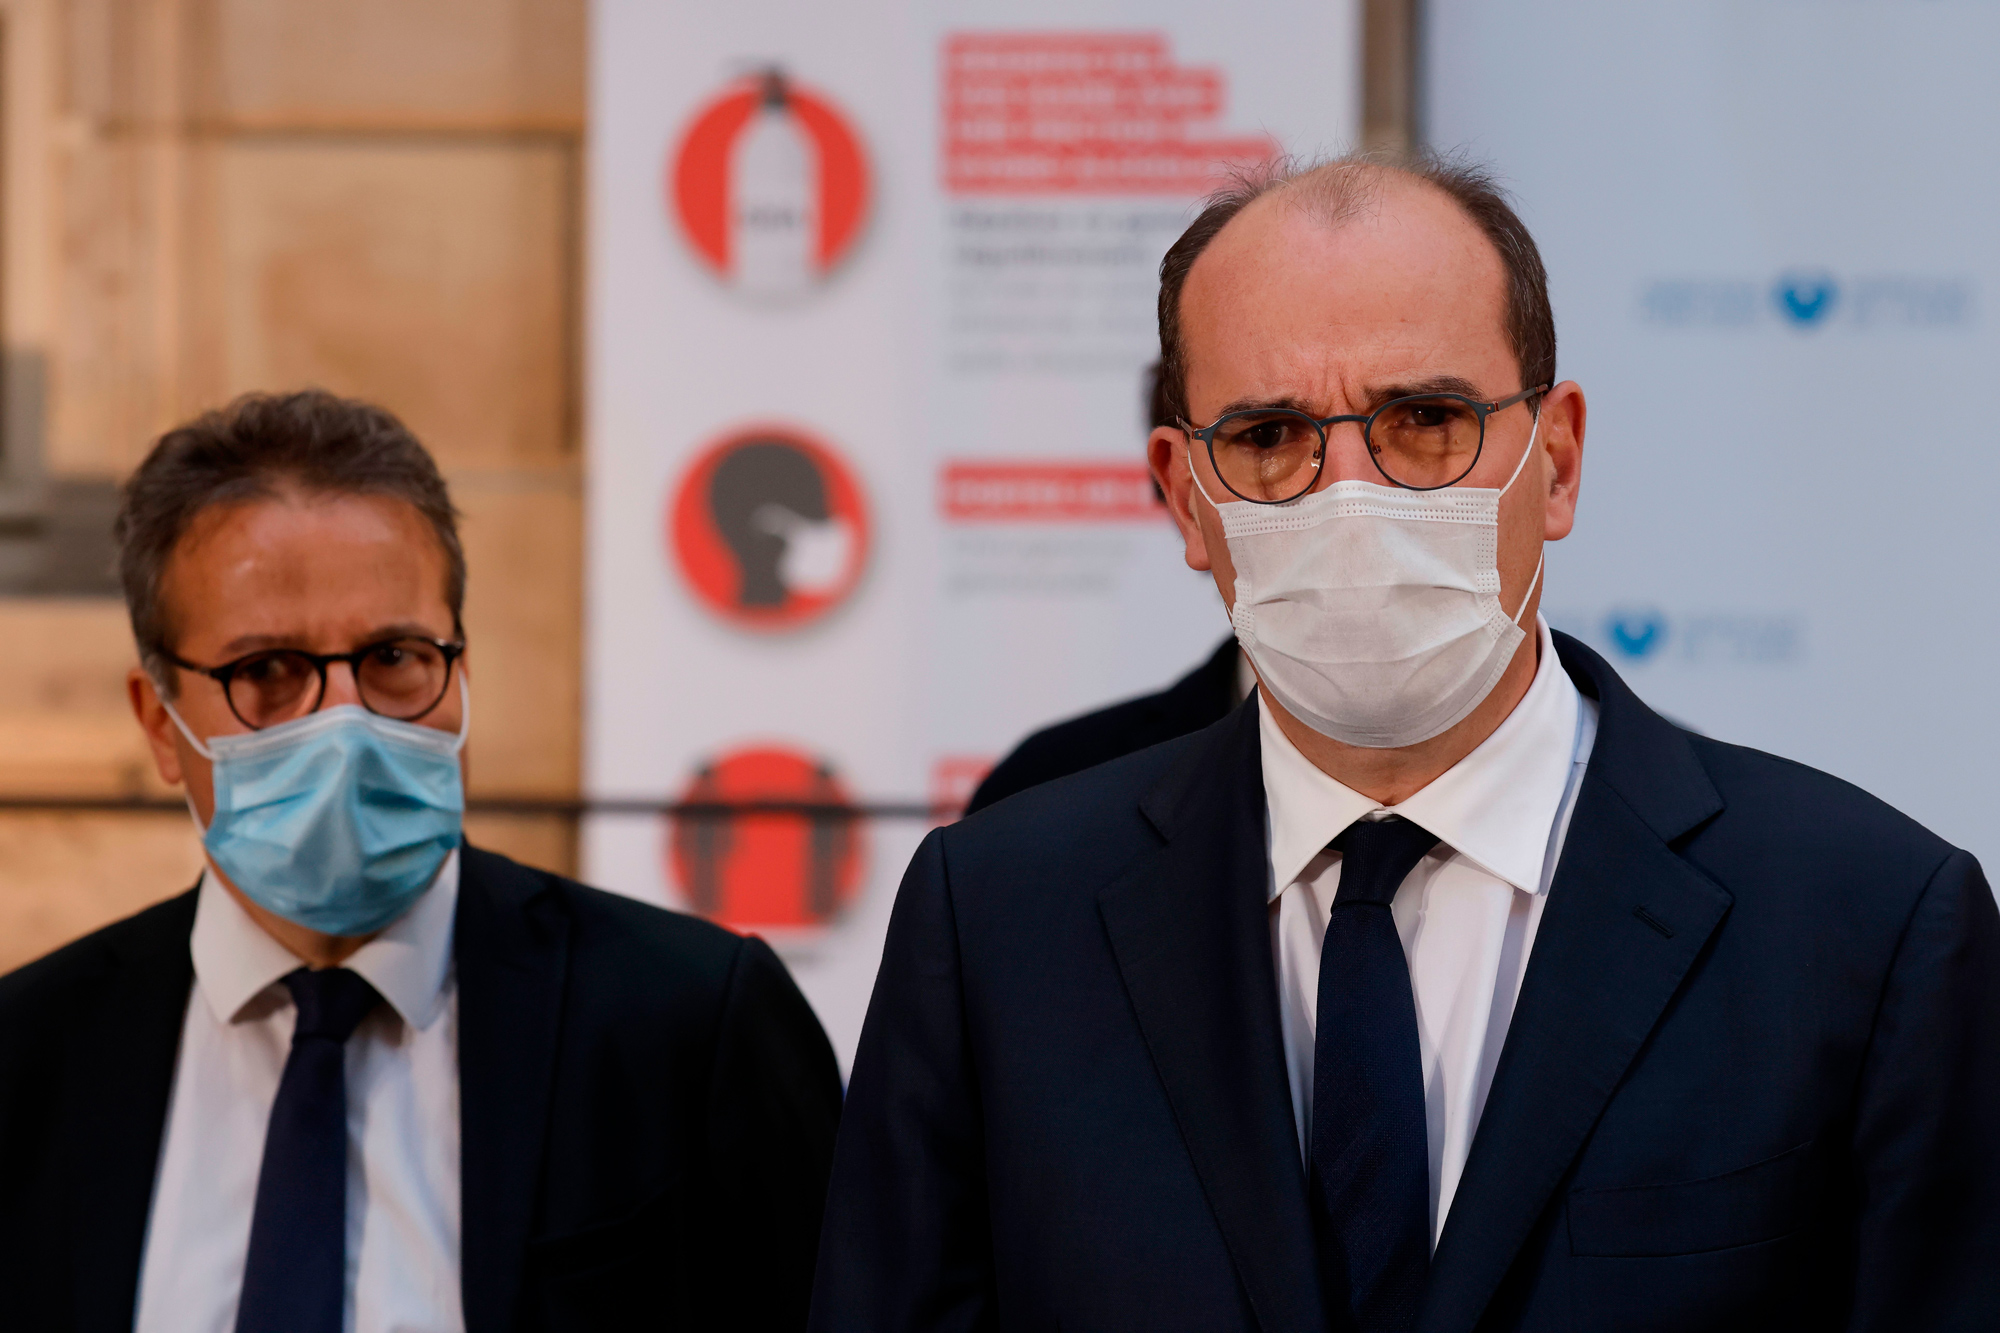 French Prime Minister Jean Castex, right, delivers a speech after a meeting at Ap-HP headquarters in Paris on October 15.